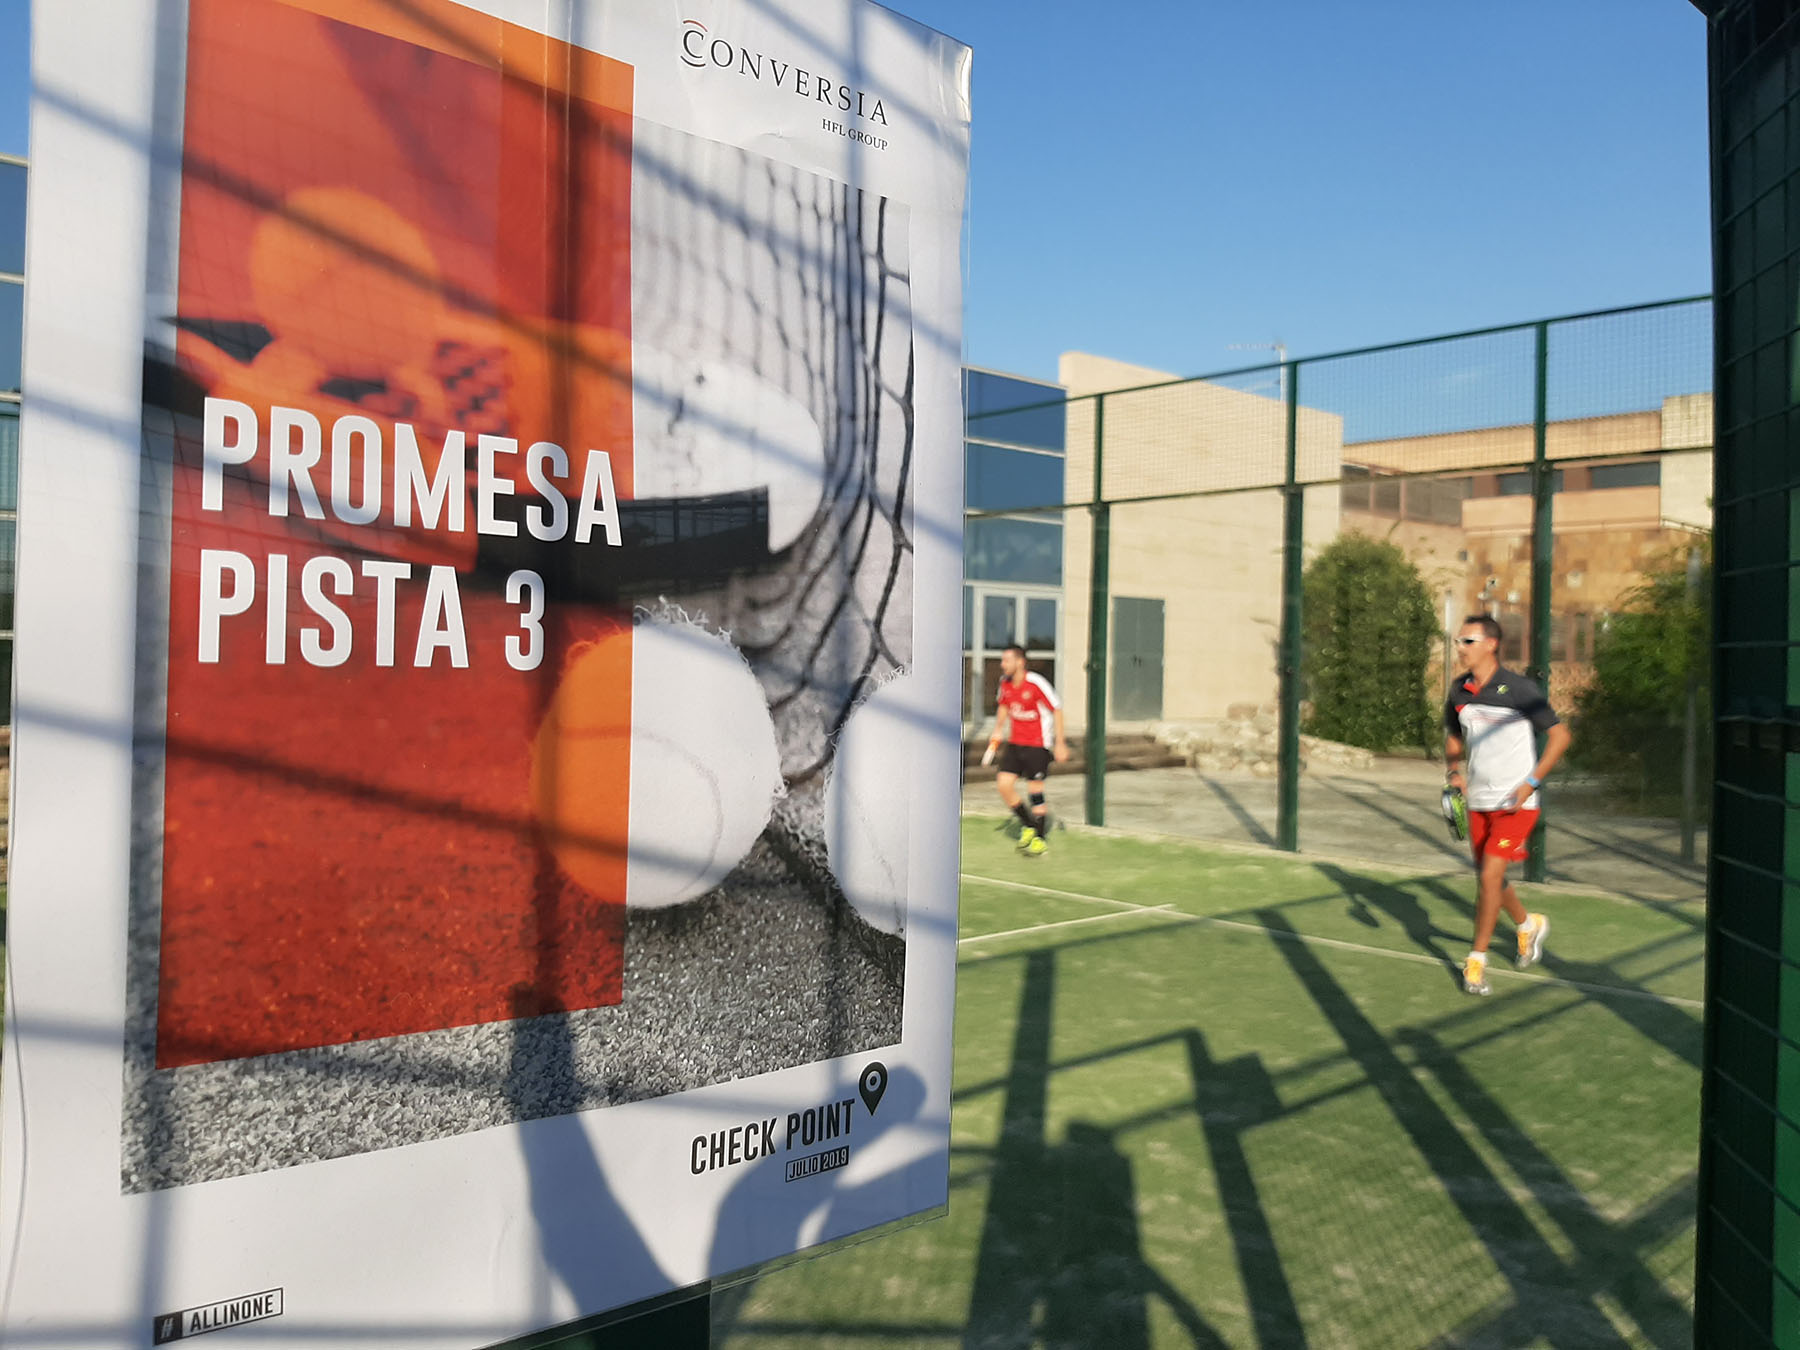 Conversia Check Point Julio 2019 Padel 2